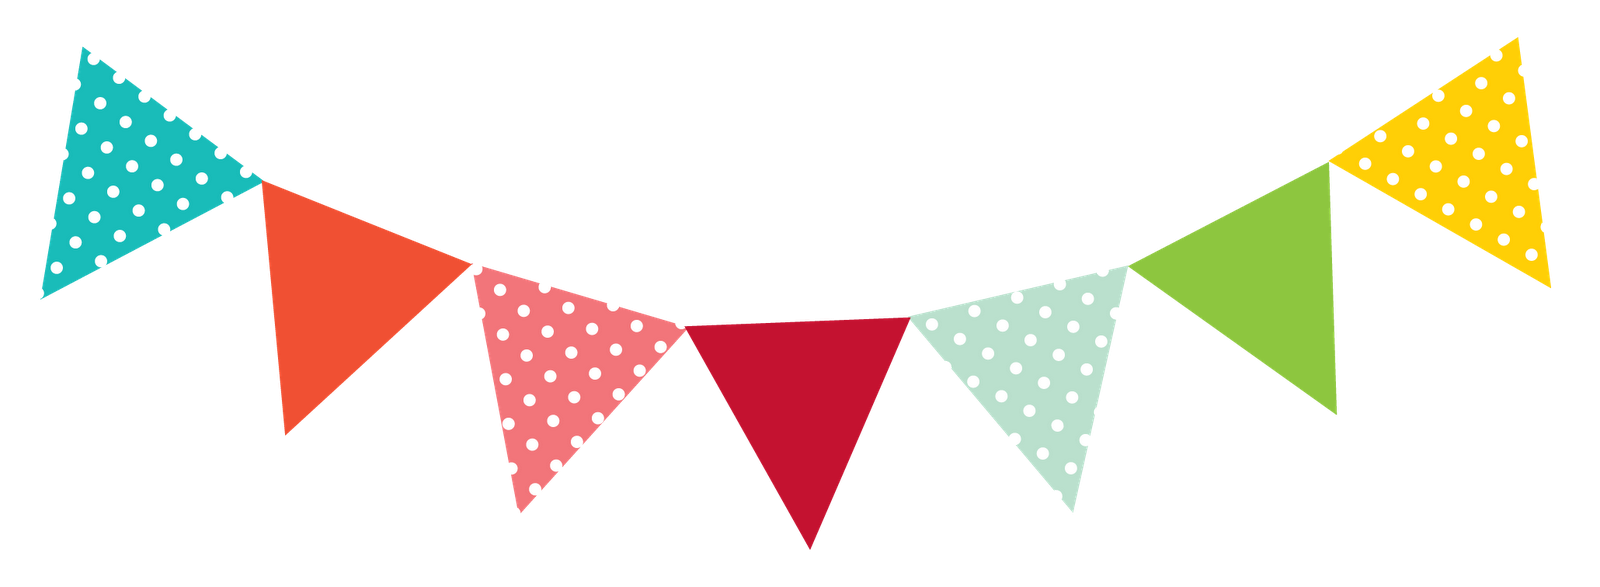 Banner cliparts free download. Square clipart pennant